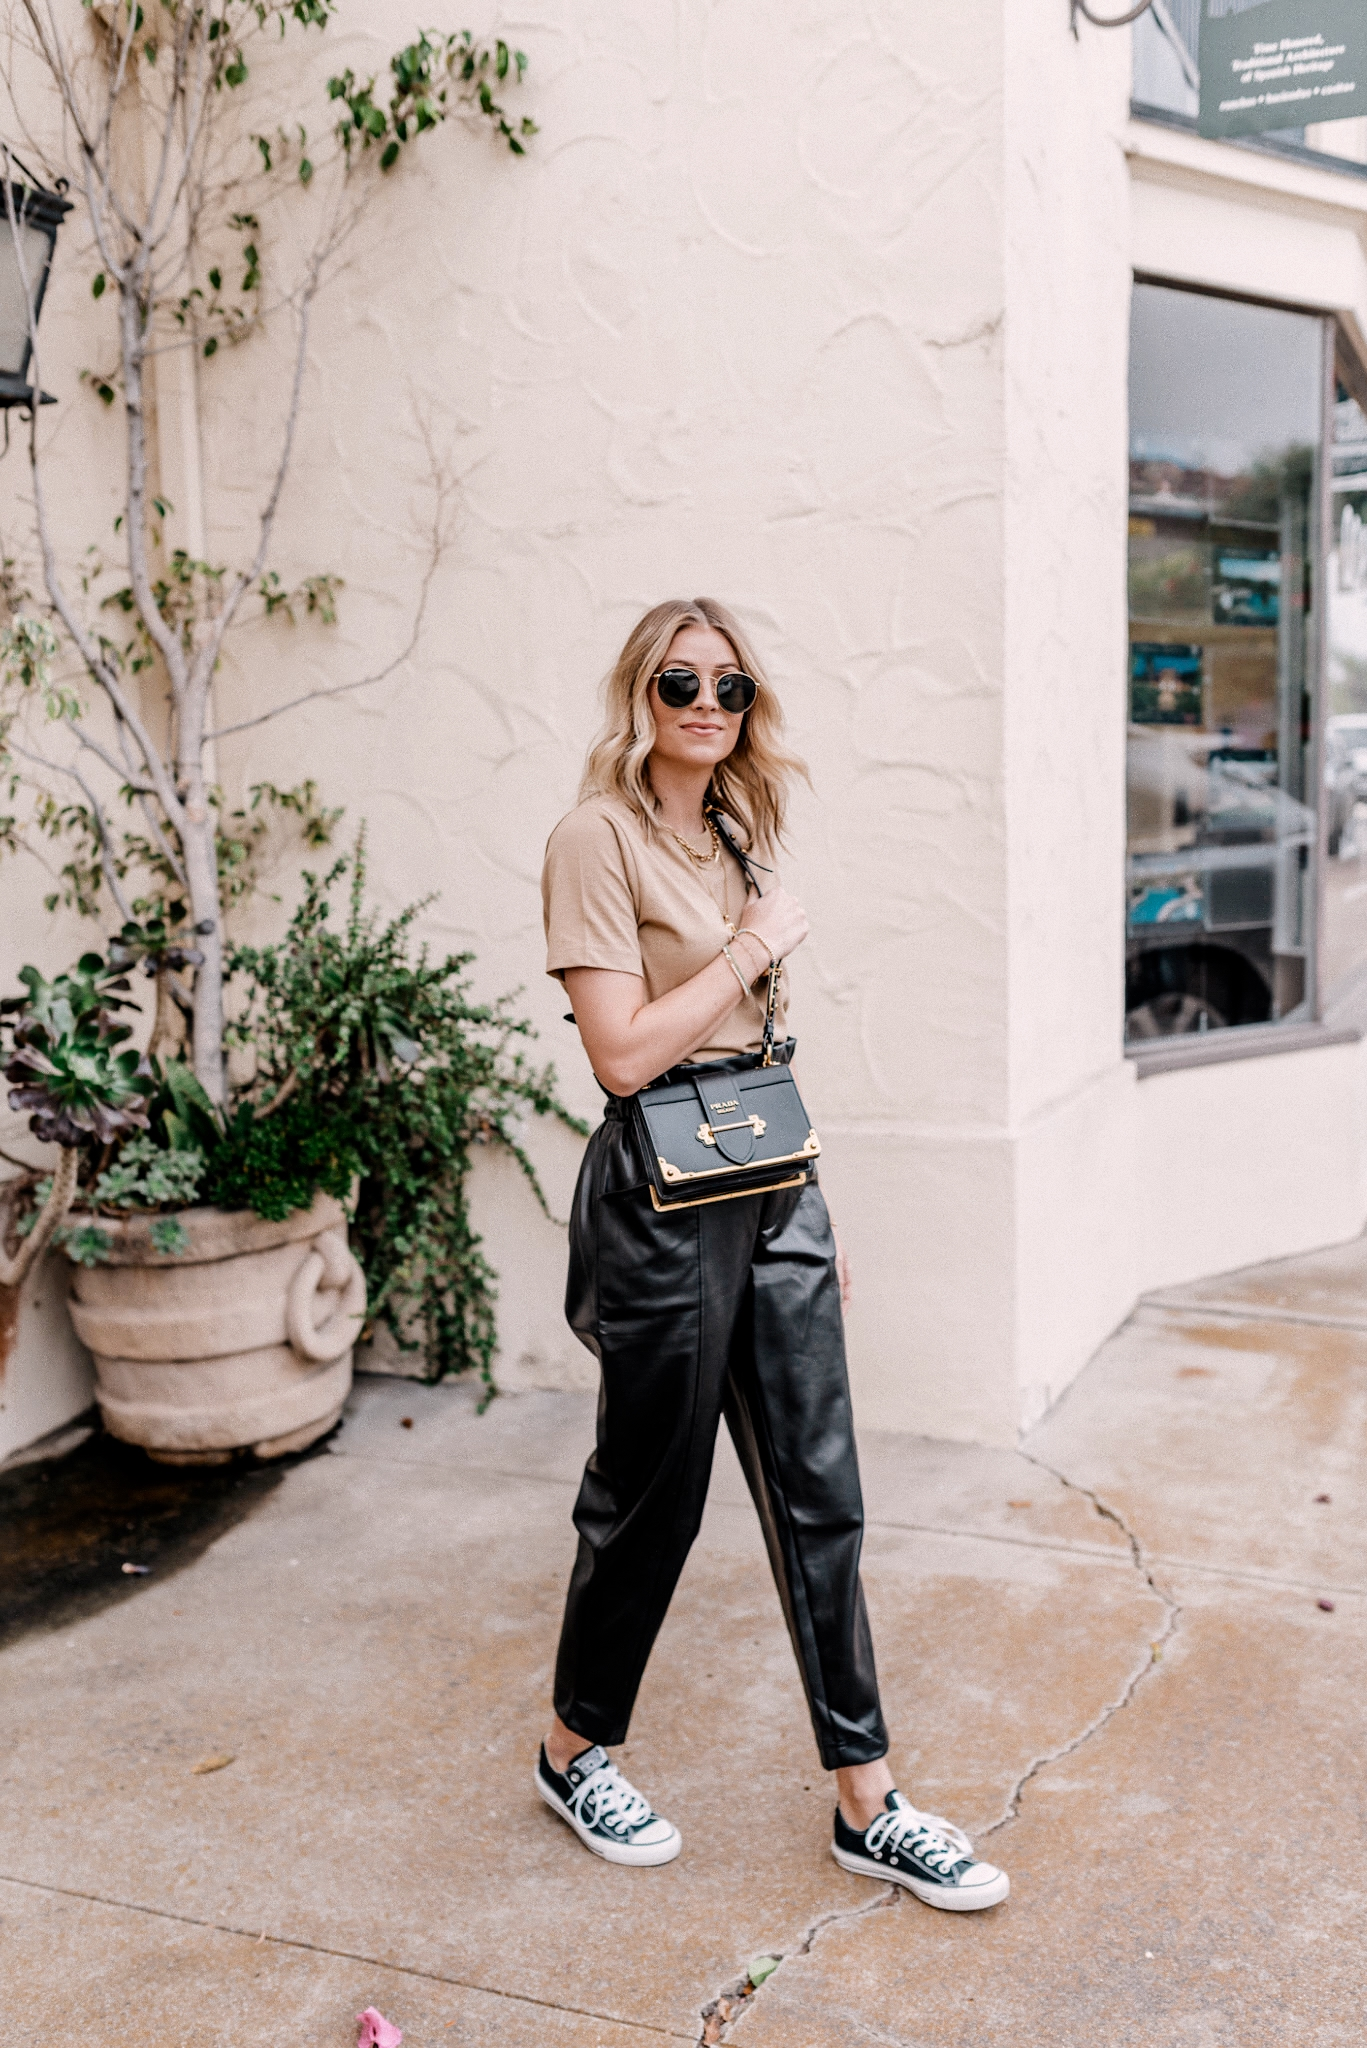 8 Faux Leather Pants |Faux Leather Pants by popular San Diego fashion blog, Navy Grace: image of a woman wearing a basic cotton tee, paper bag faux leather pants, ray-ban sunglasses, and Converse sneakers.